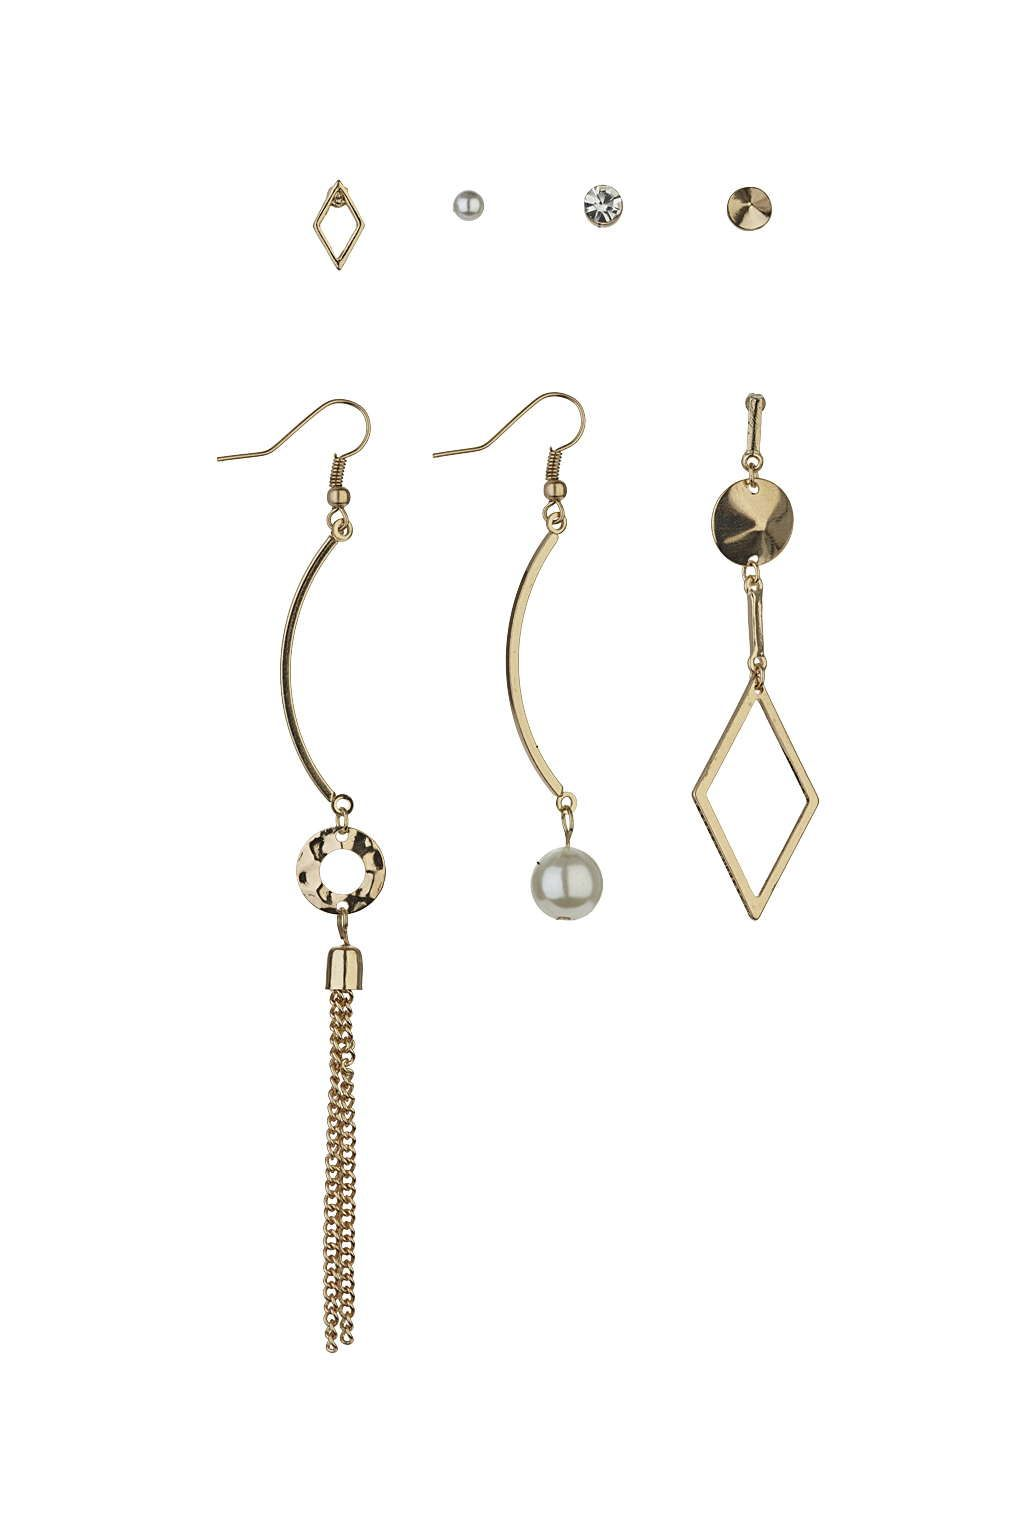 york spade mismatched earrings a stud zoom sale in million kate new one